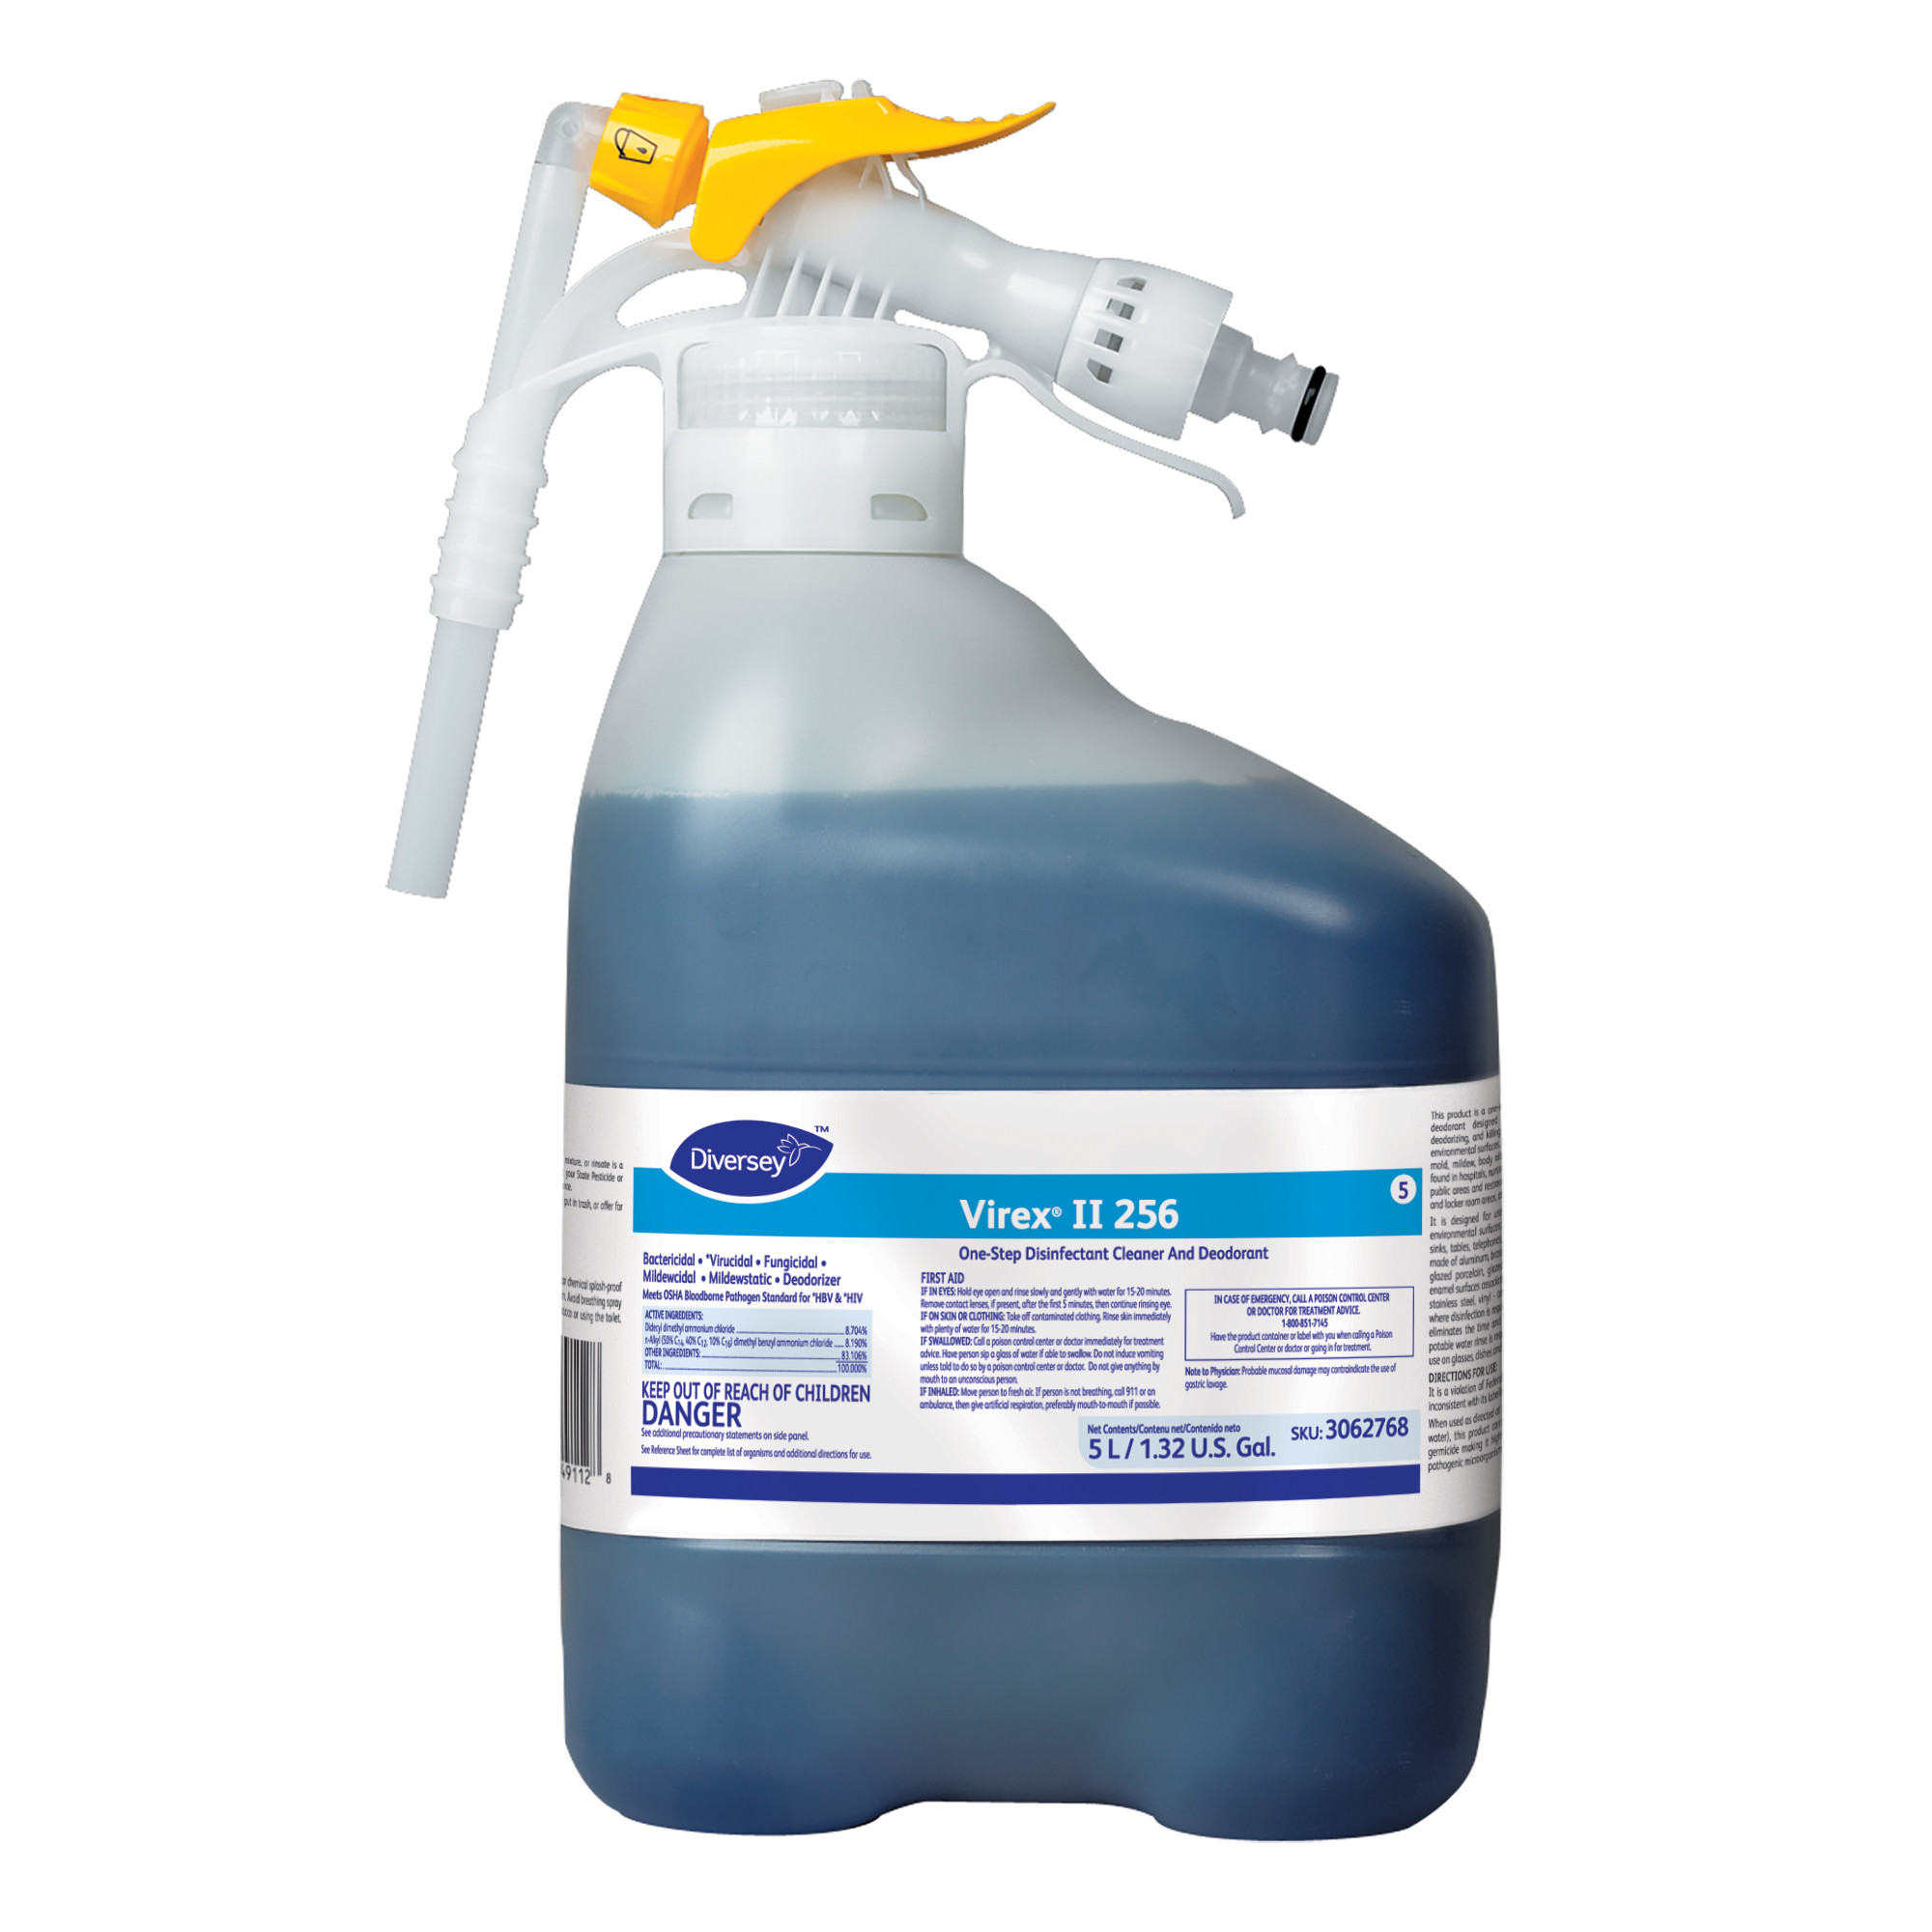 Diversey Virex II 256 Disinfectant Cleaner - 5 L RTD